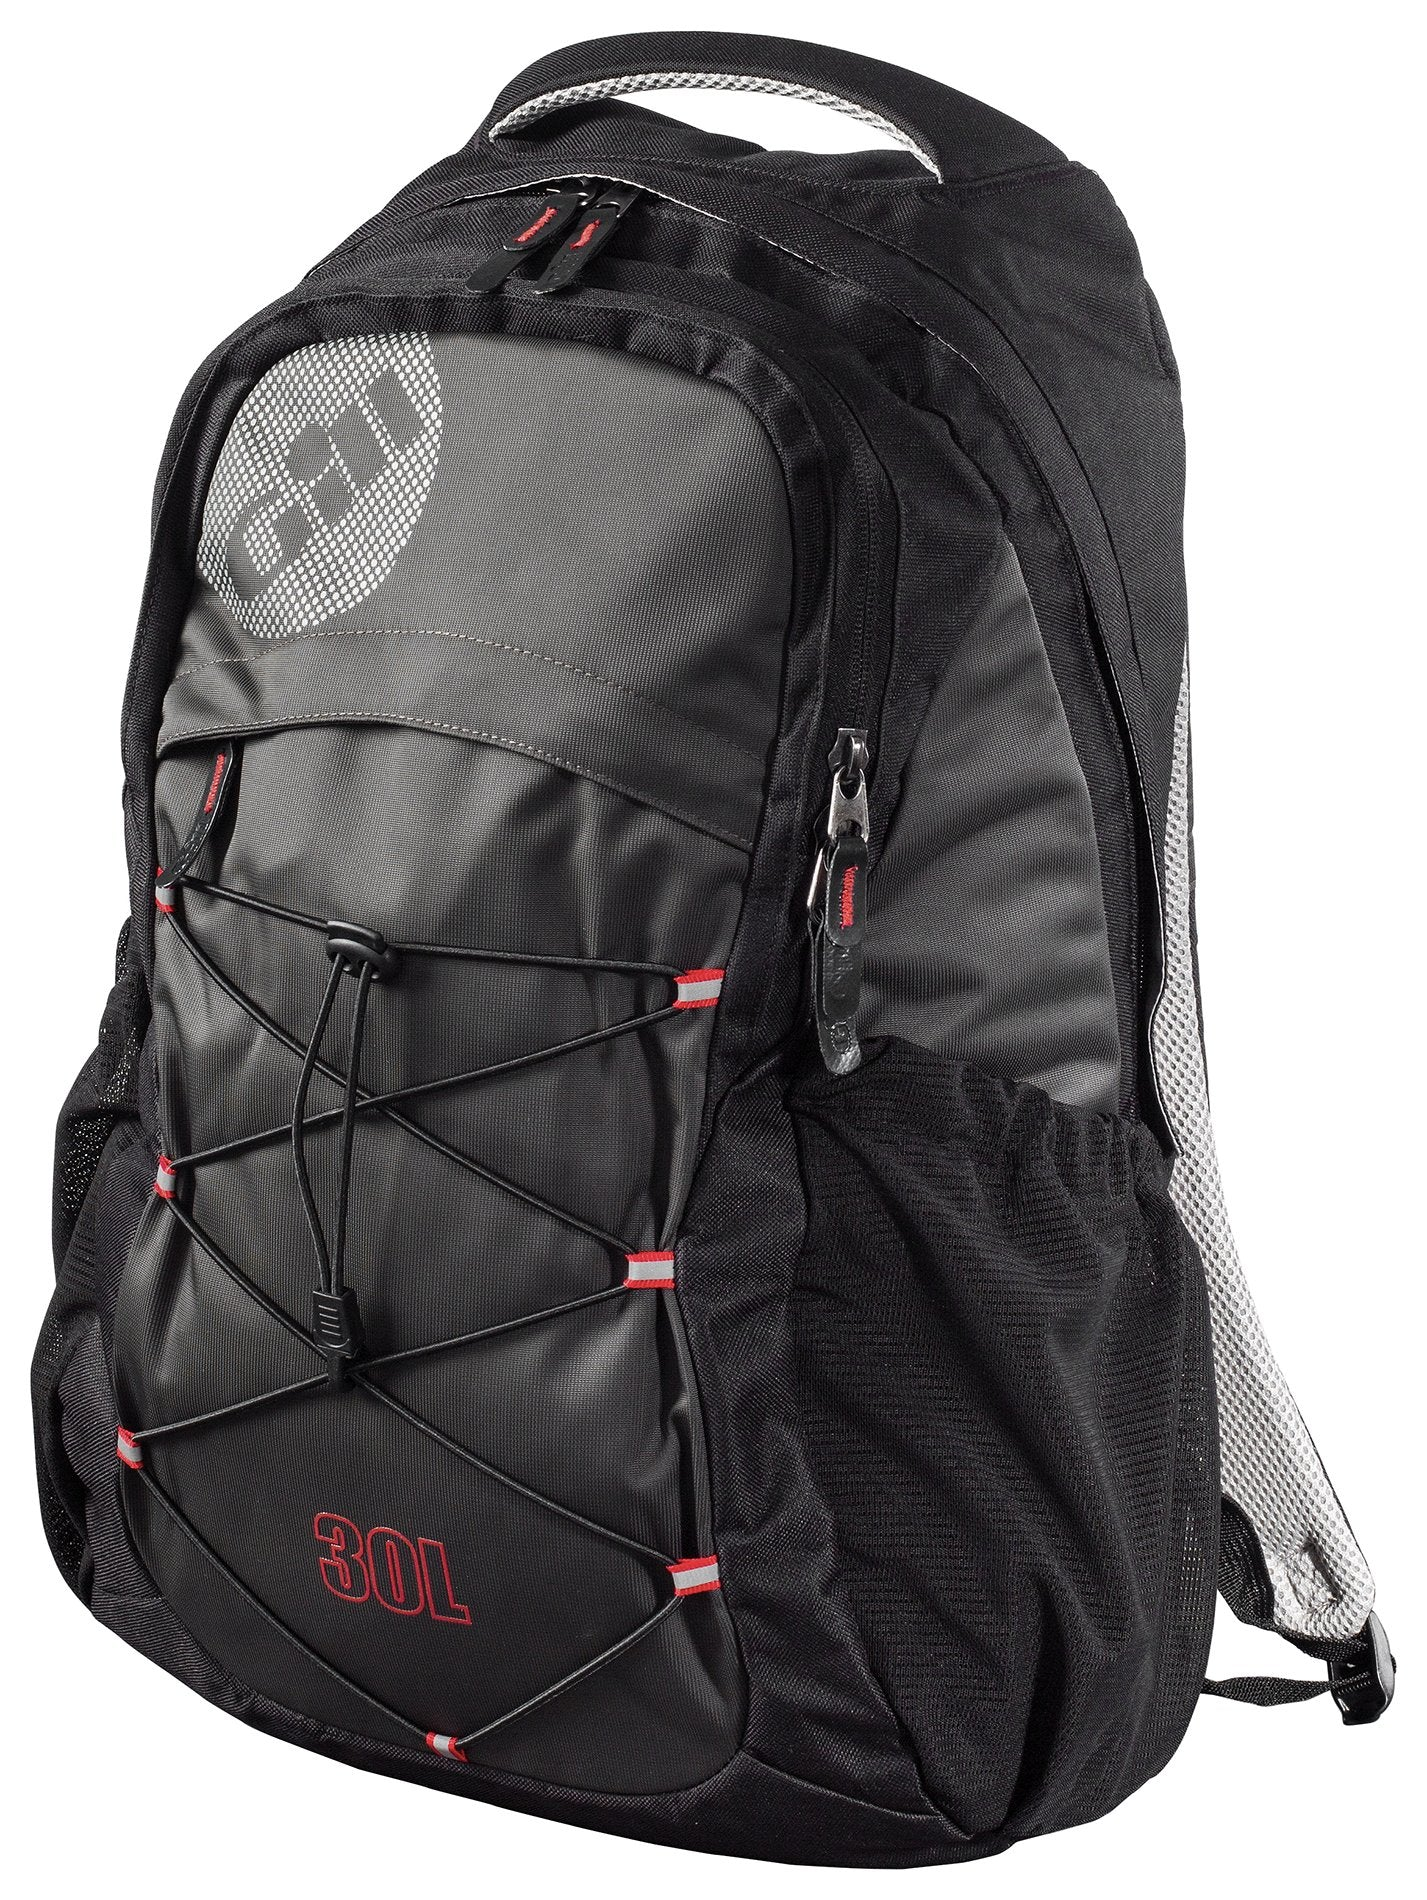 Gill 30 litre Backpack